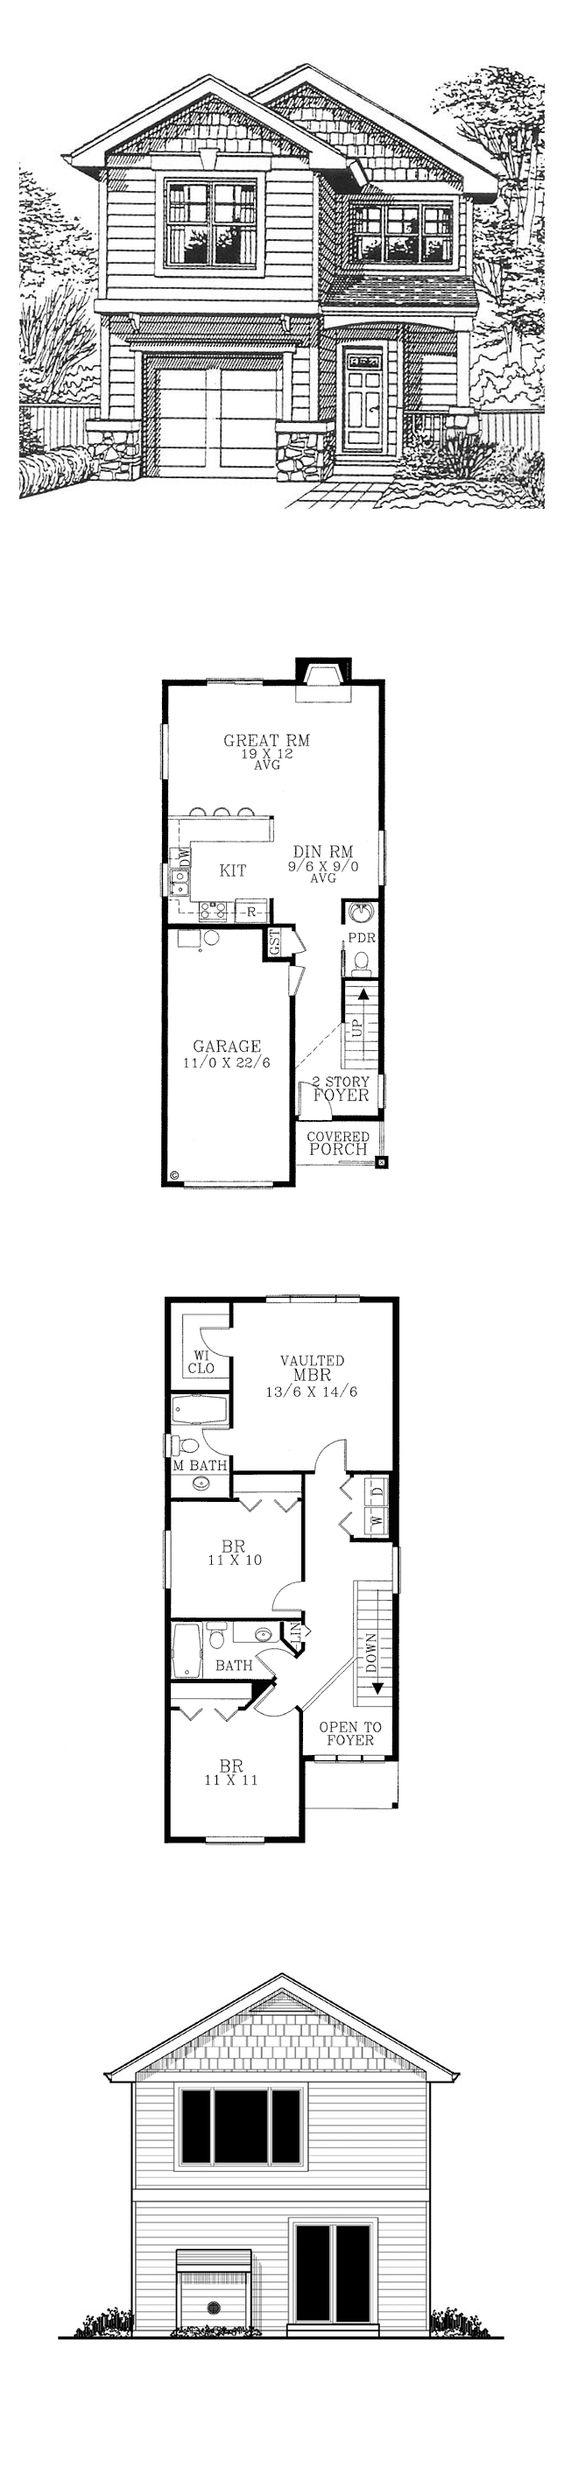 Bungalow craftsman house plan 91470 house plans for Irregular house plans